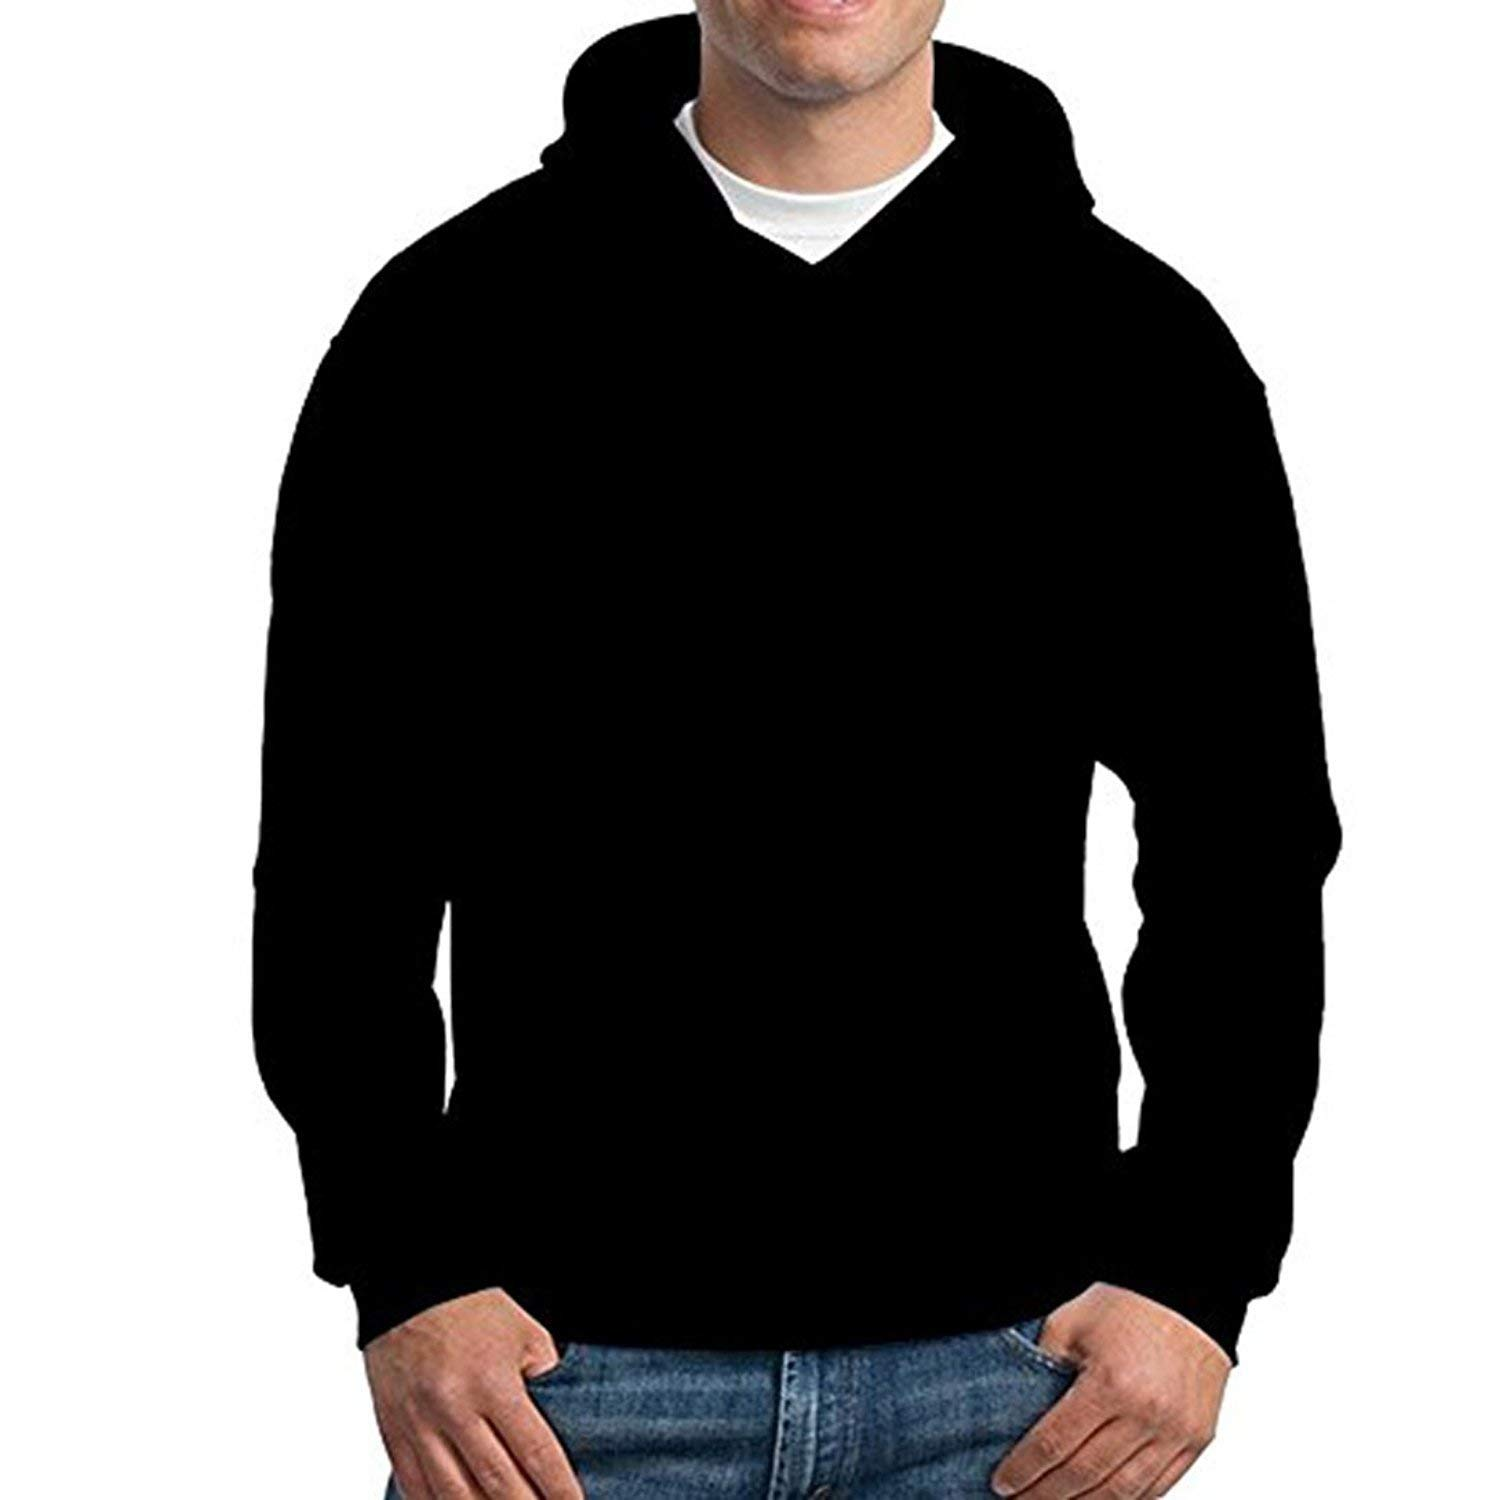 CopyBoy Store Customizable Personalized Mustache 1 F Hoodie Sweatshirt